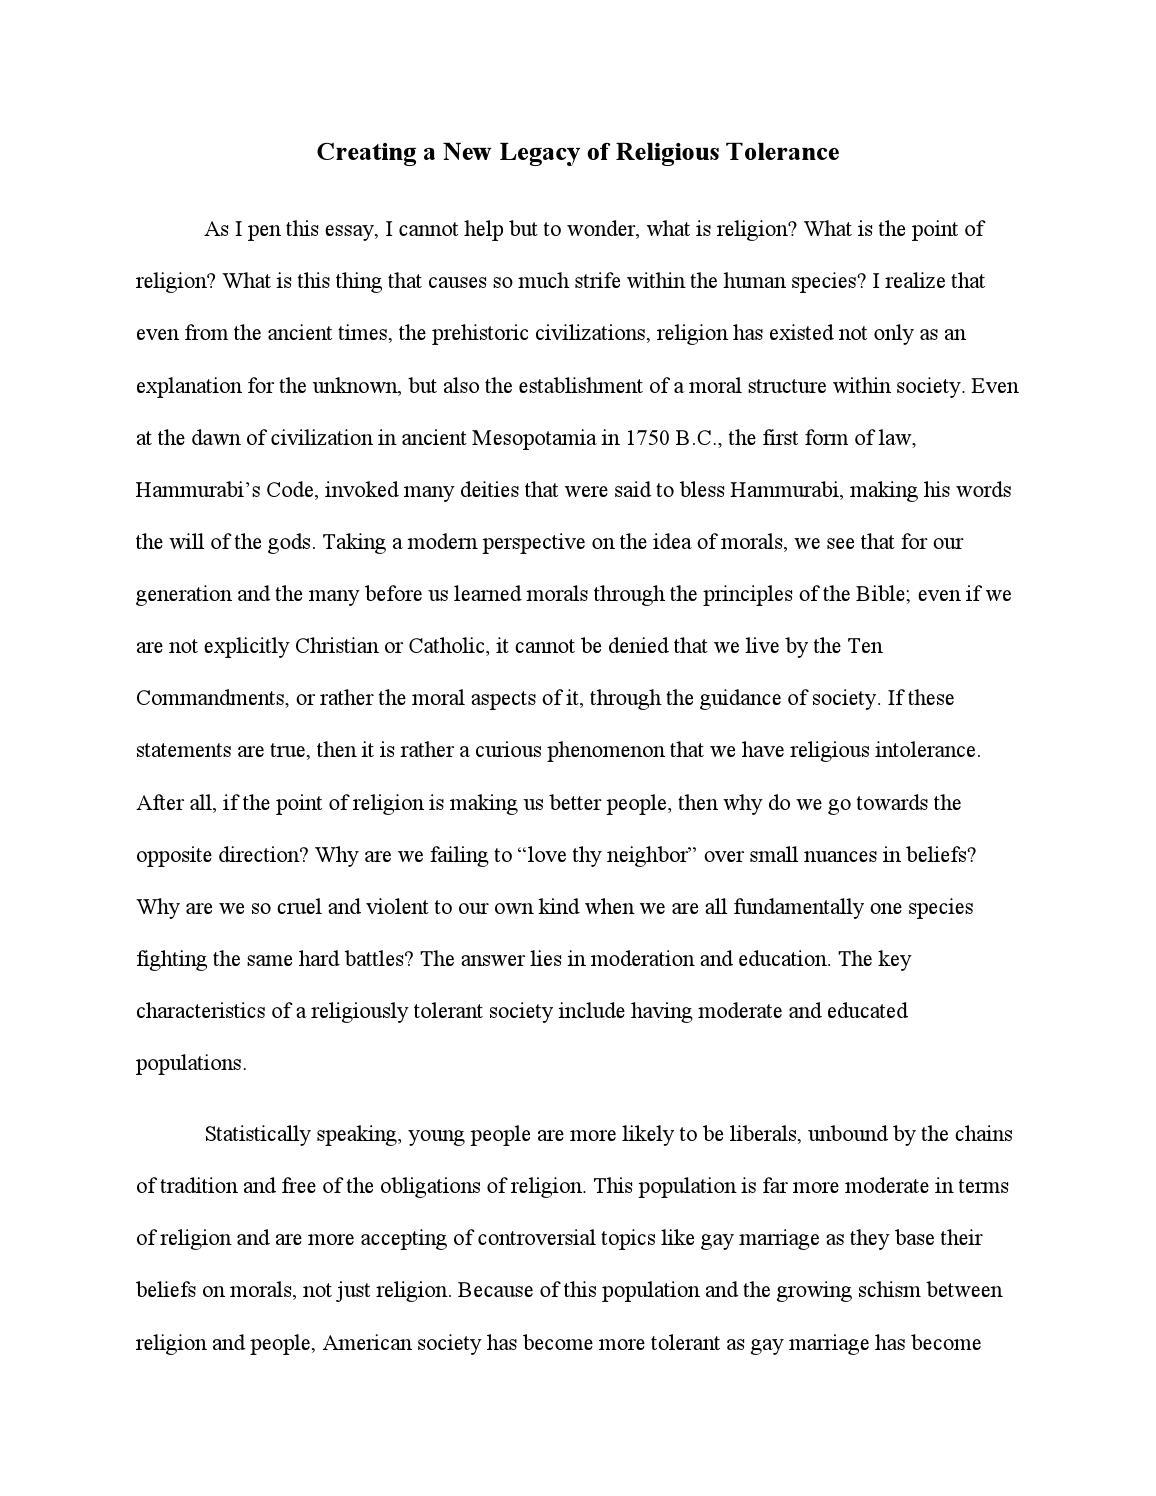 tolerance in society essay